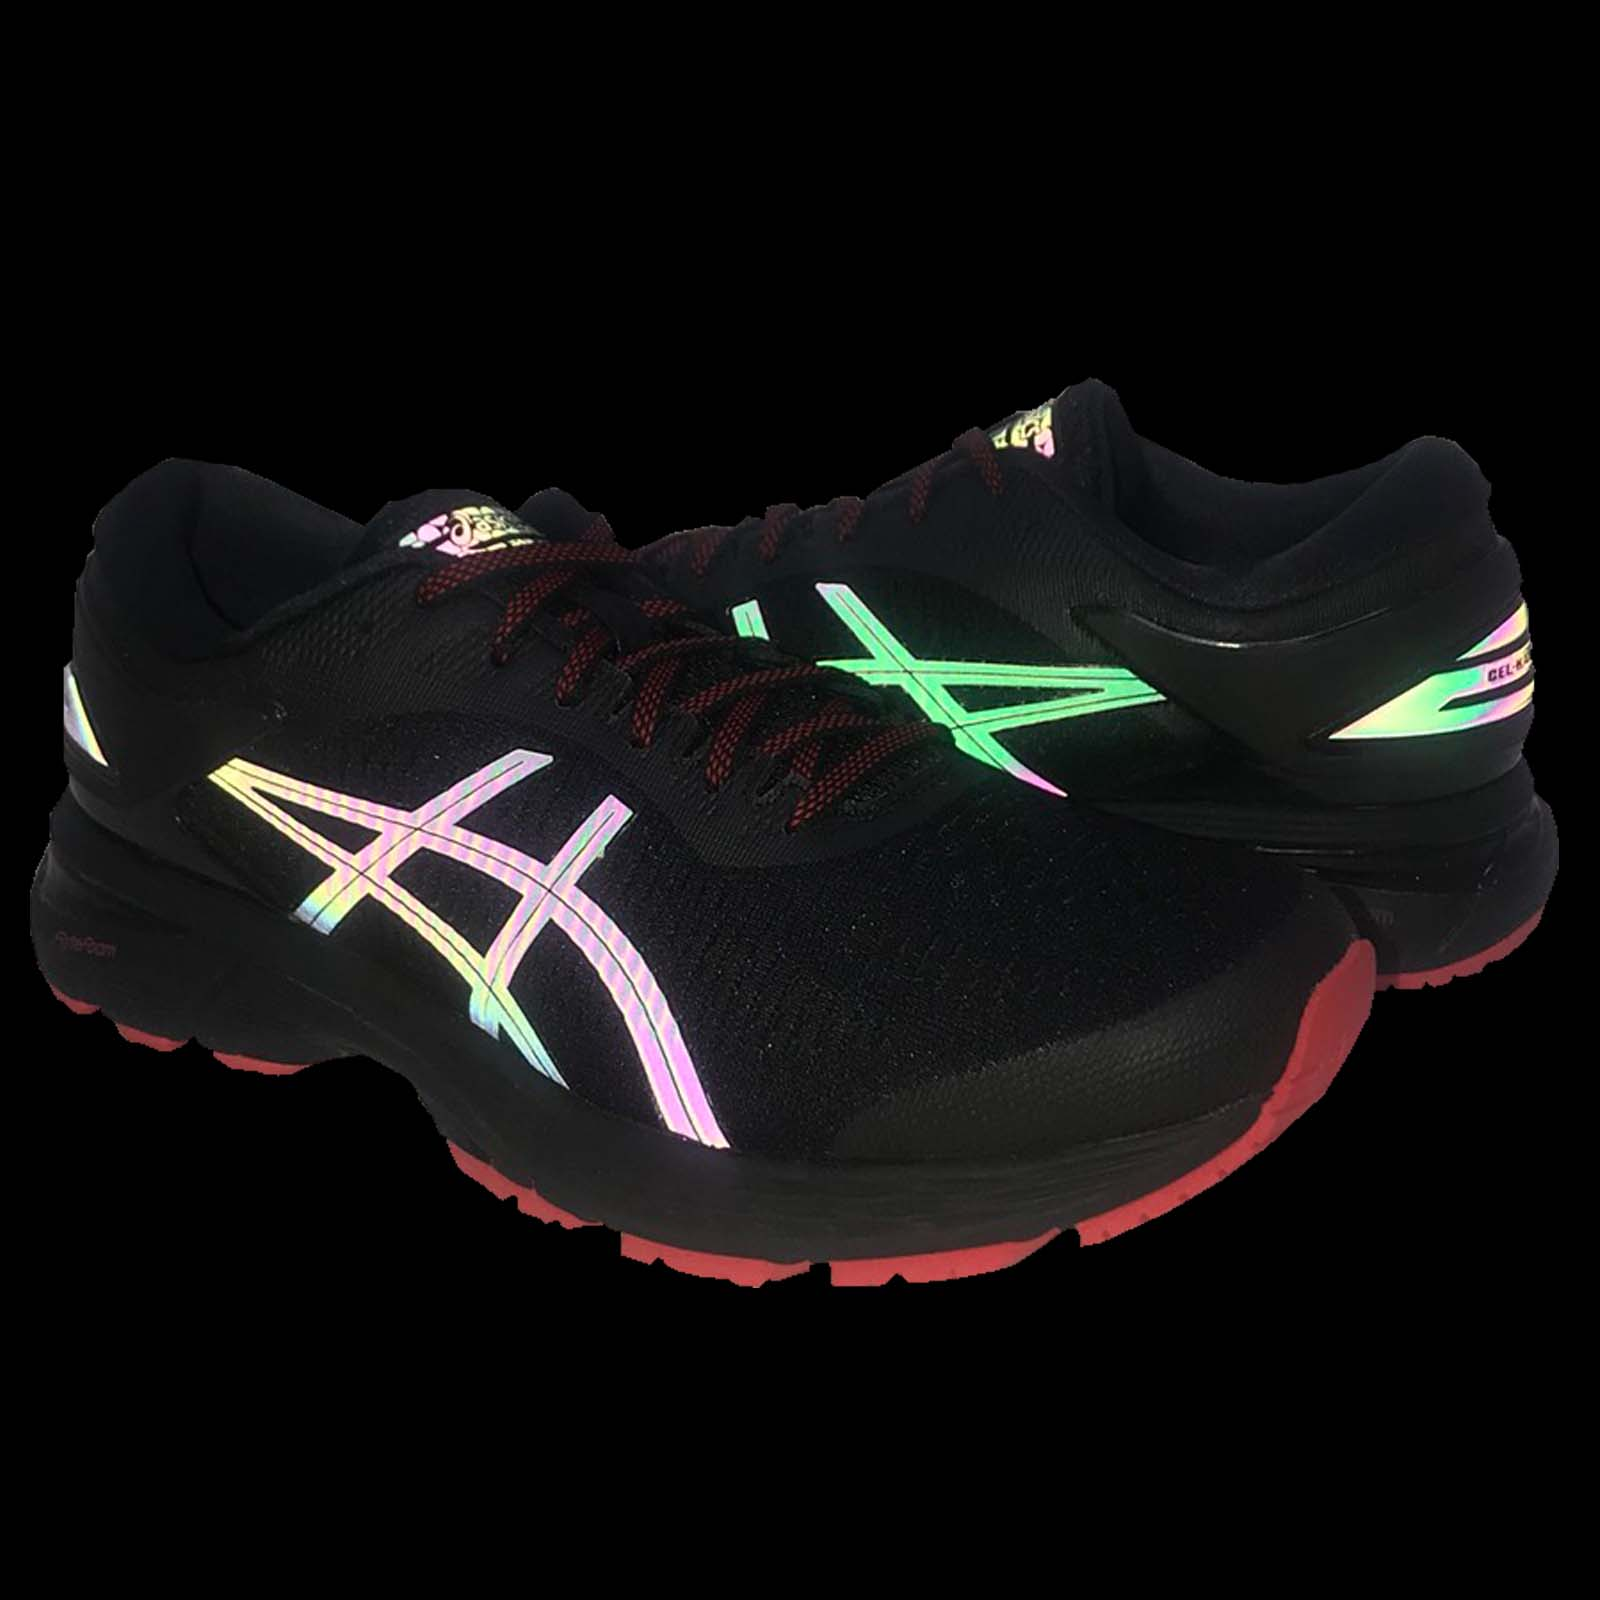 3f1229ad Details about Asics Gel-Kayano 25 Lite-Show Black Reflective Men Running  Shoes 1011A022-001